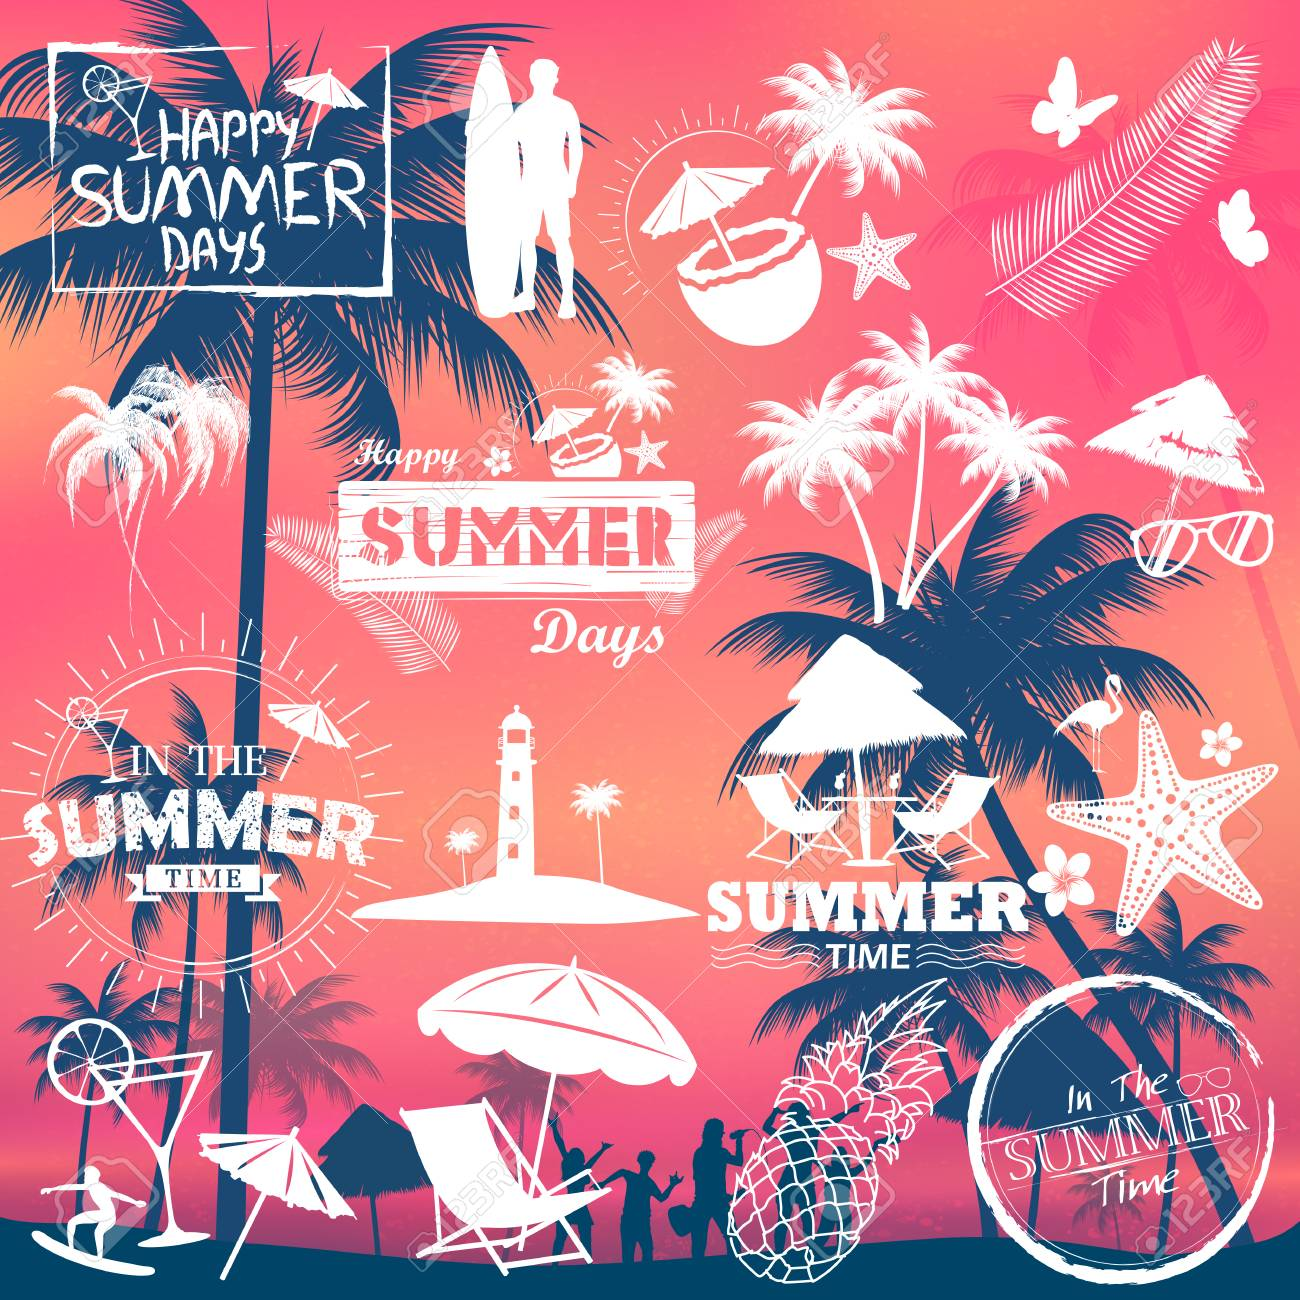 Summer Time Poster Wallpaper For Fun Party Invitation Banner ...